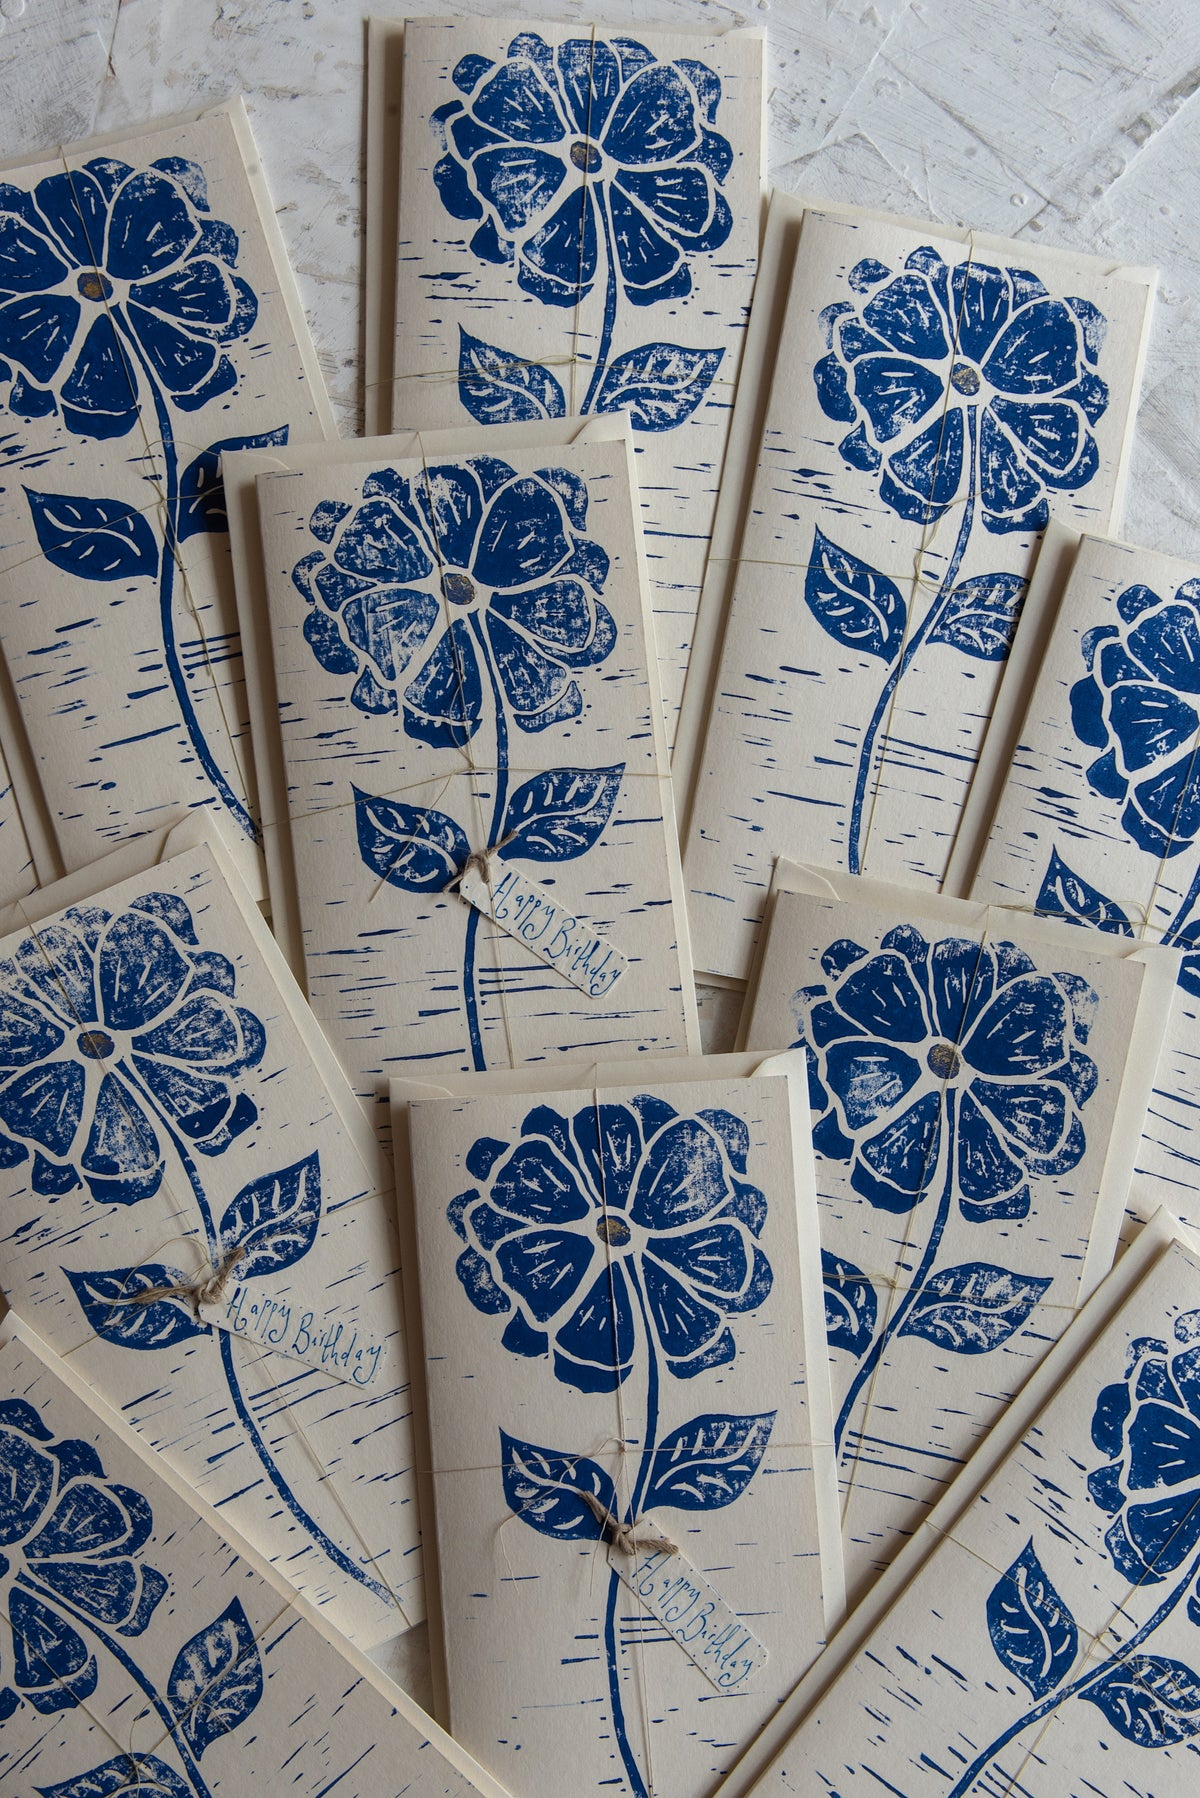 Image of 'Blue Flower' hand block printed greeting cards